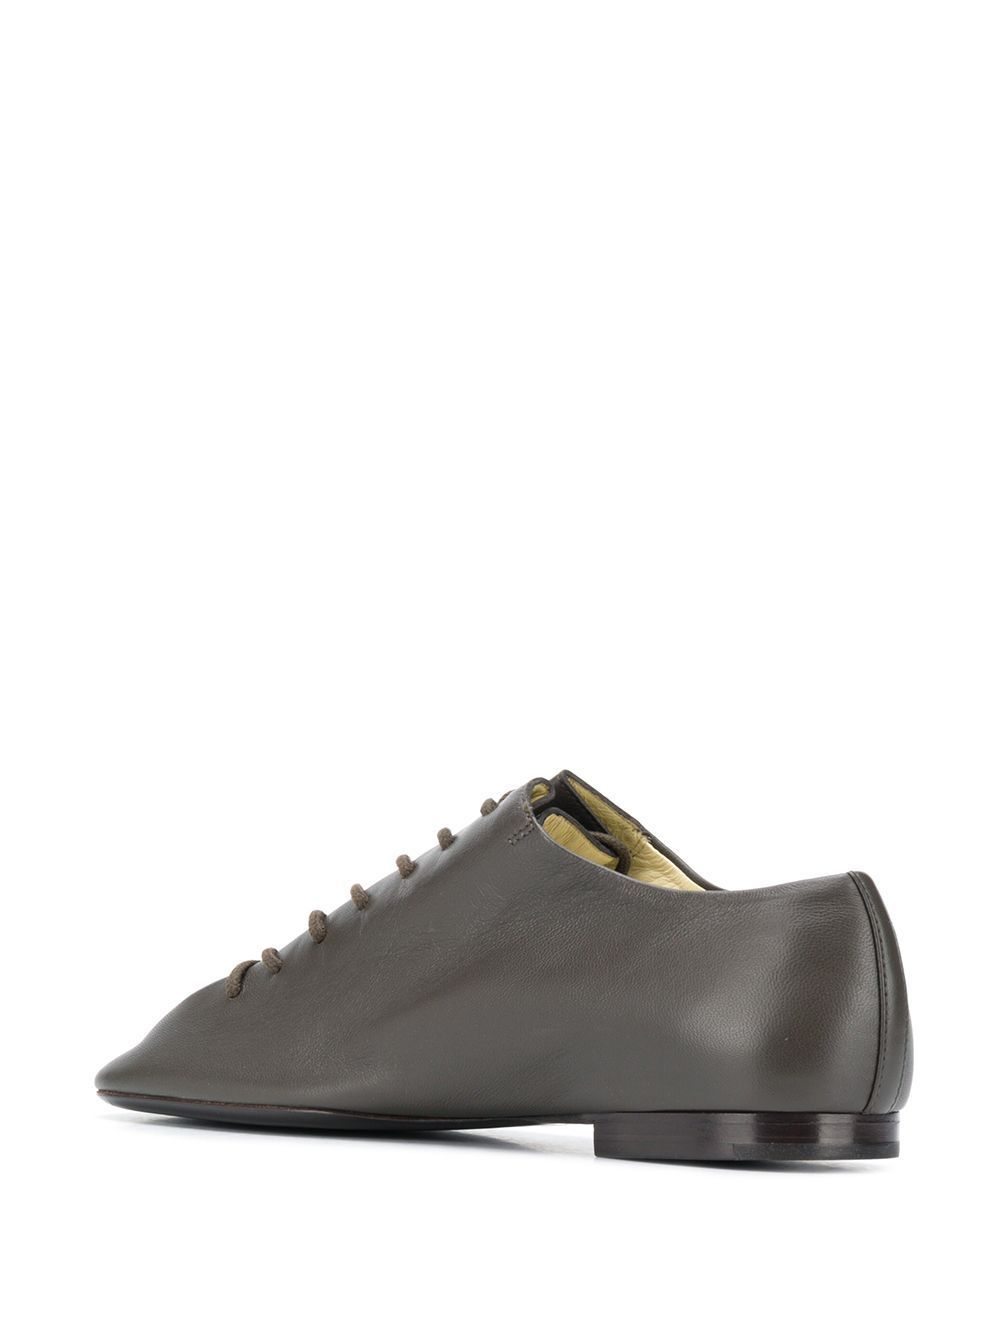 shop christophe lemaire shoes